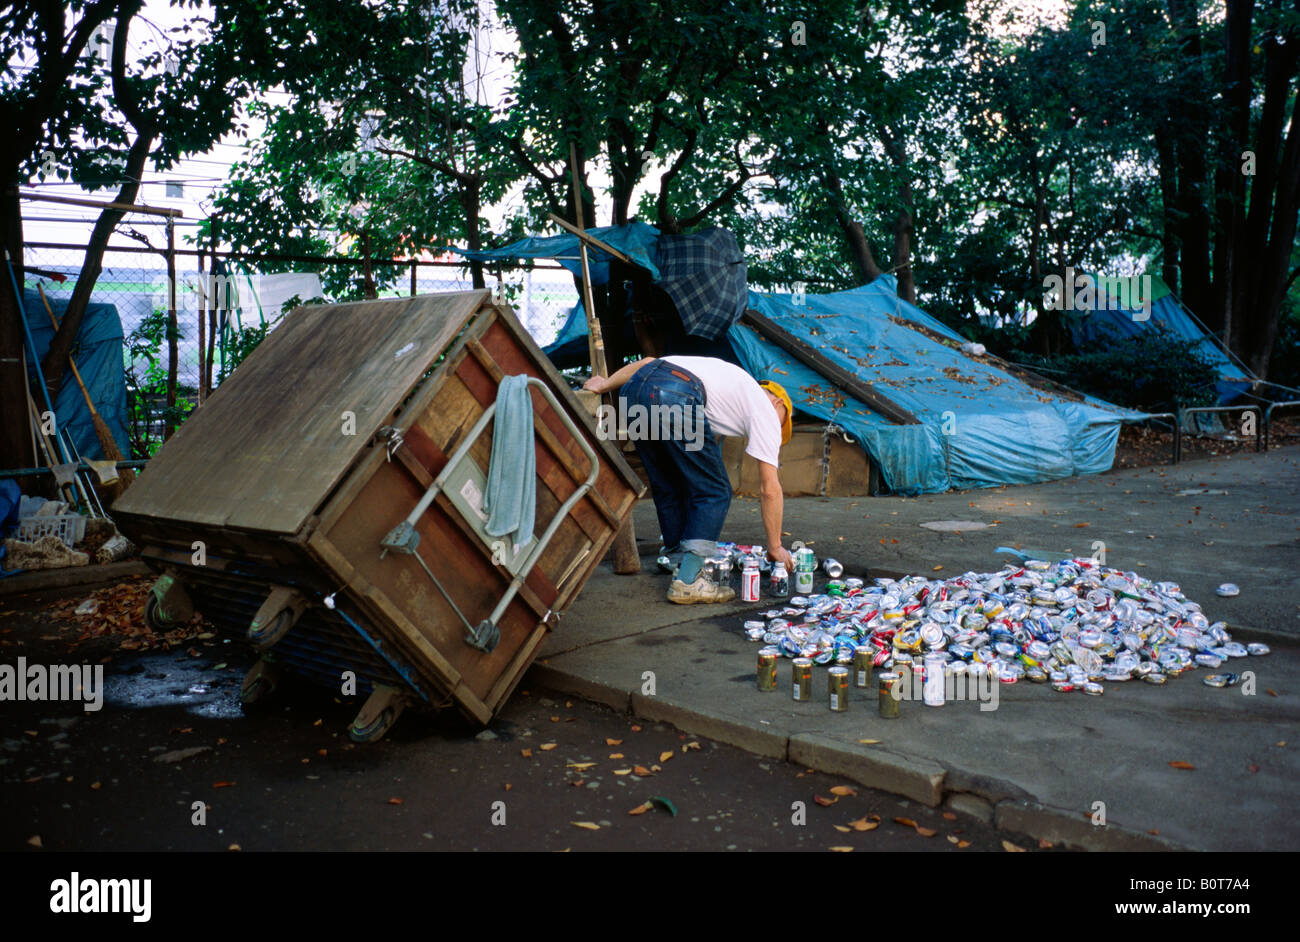 Nov 10, 2004 - Homeless man in a small park in Tokyo recycles drinking cans in order to make a little cash from - Stock Image